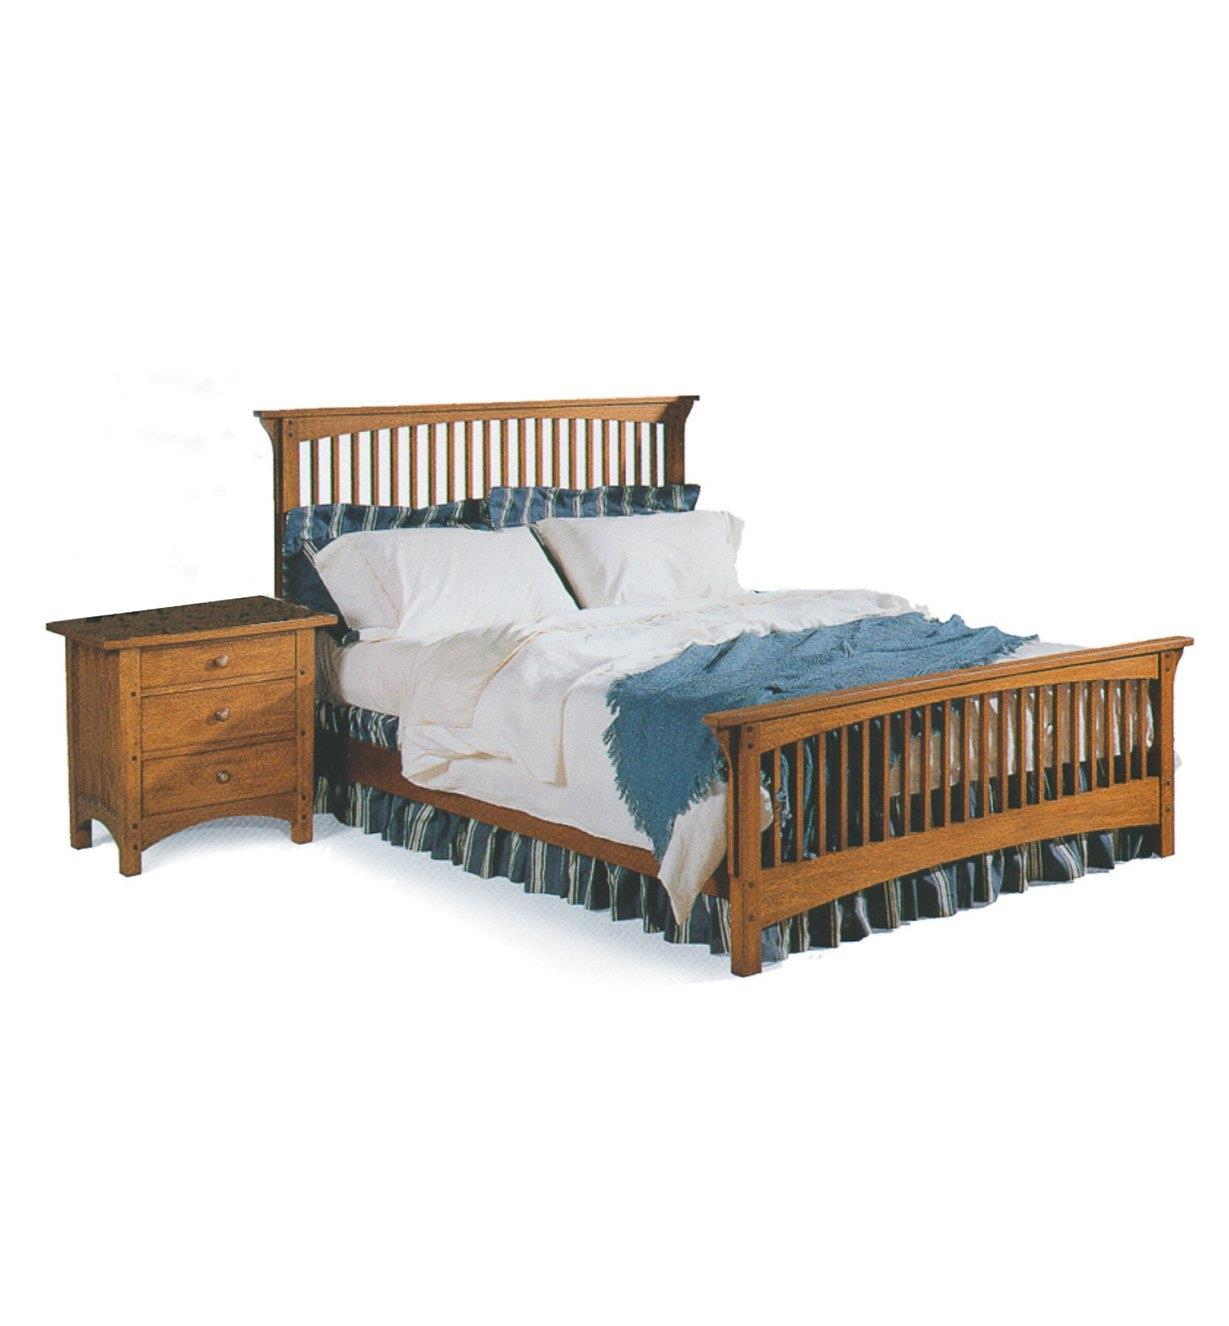 01L5018 - Mission Bed & Nightstand Plan